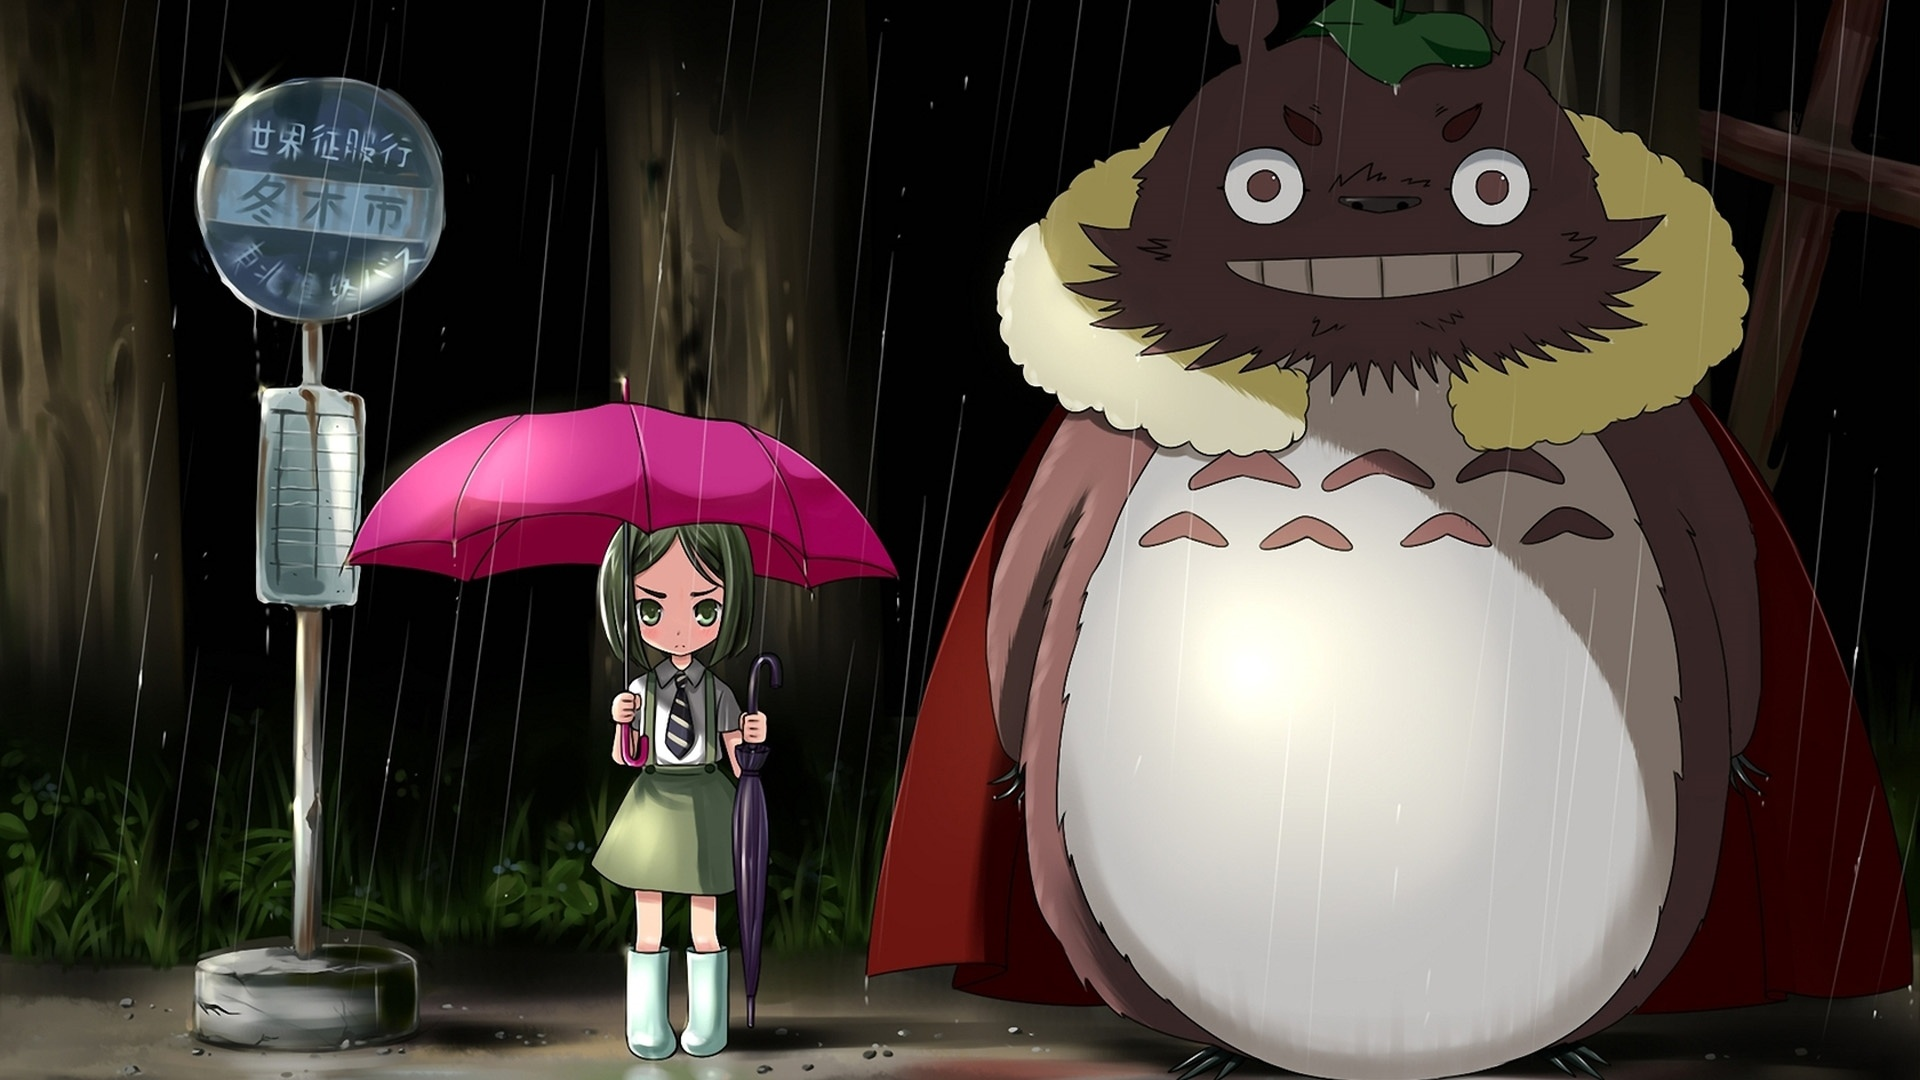 Little Girl And Totoro Anime Wallpaper Waiting At The Station On